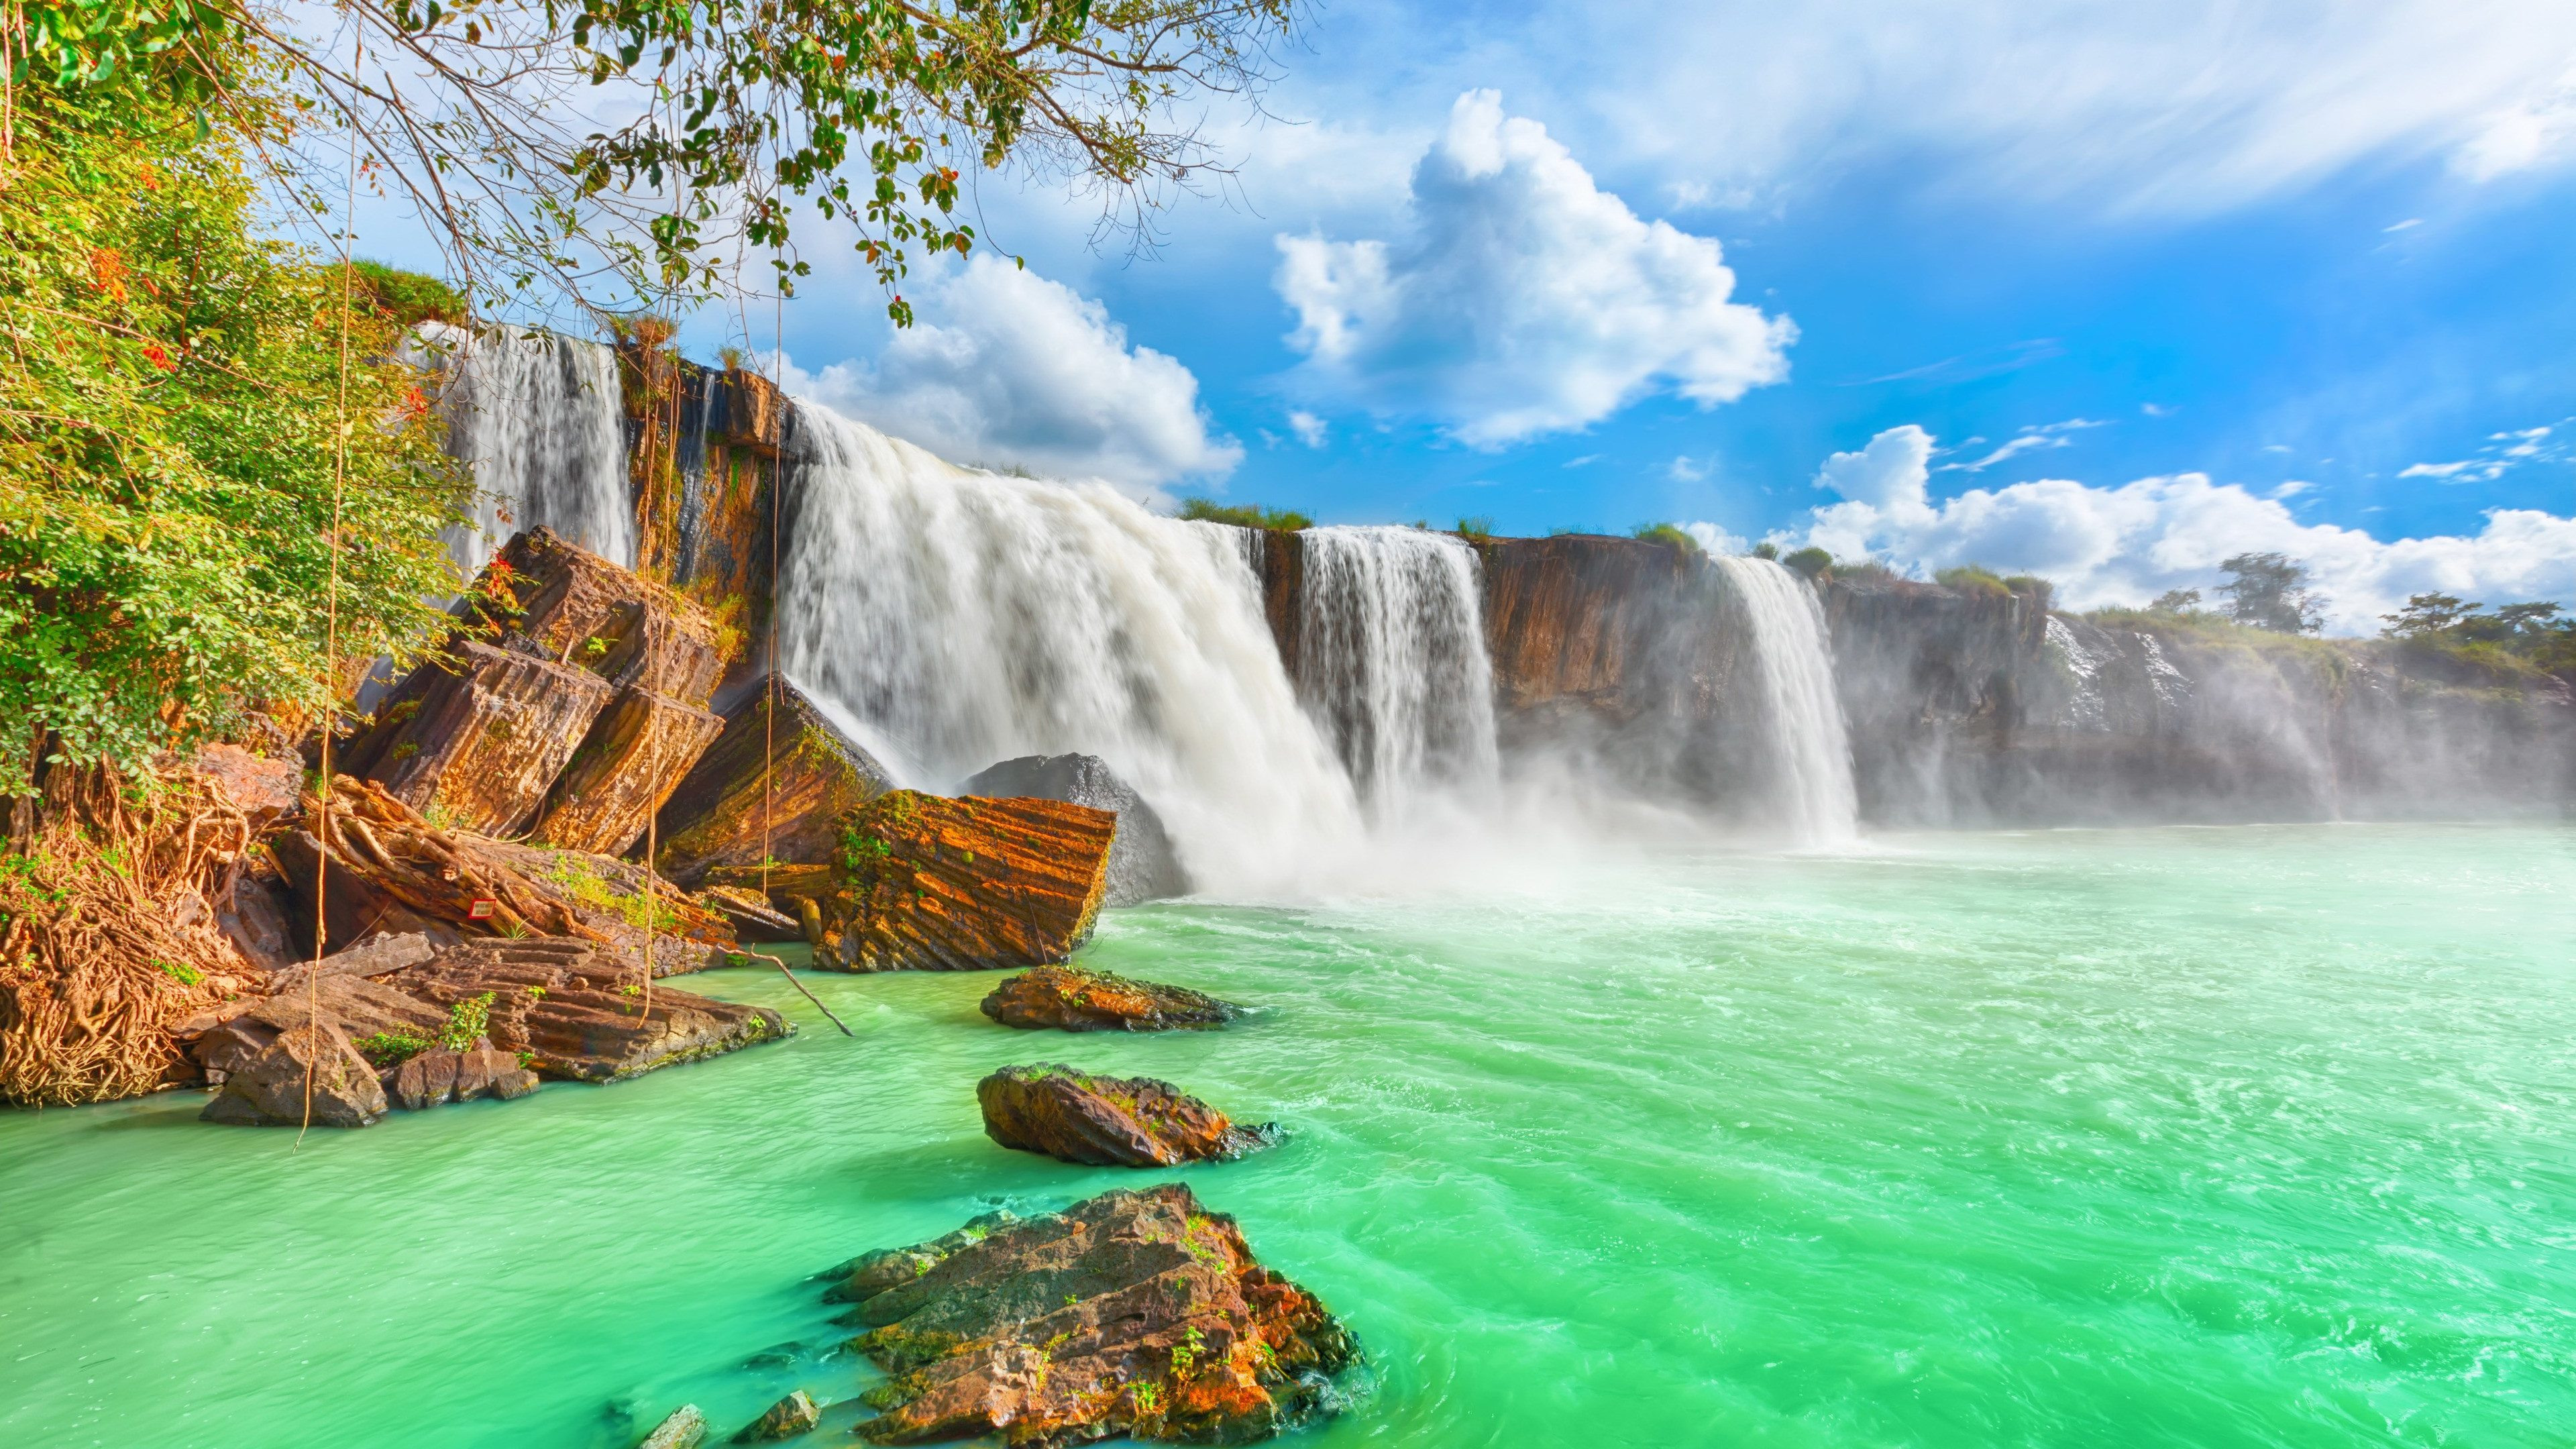 High Quality Vietnam Waterfalls Wallpaper-3840x2160